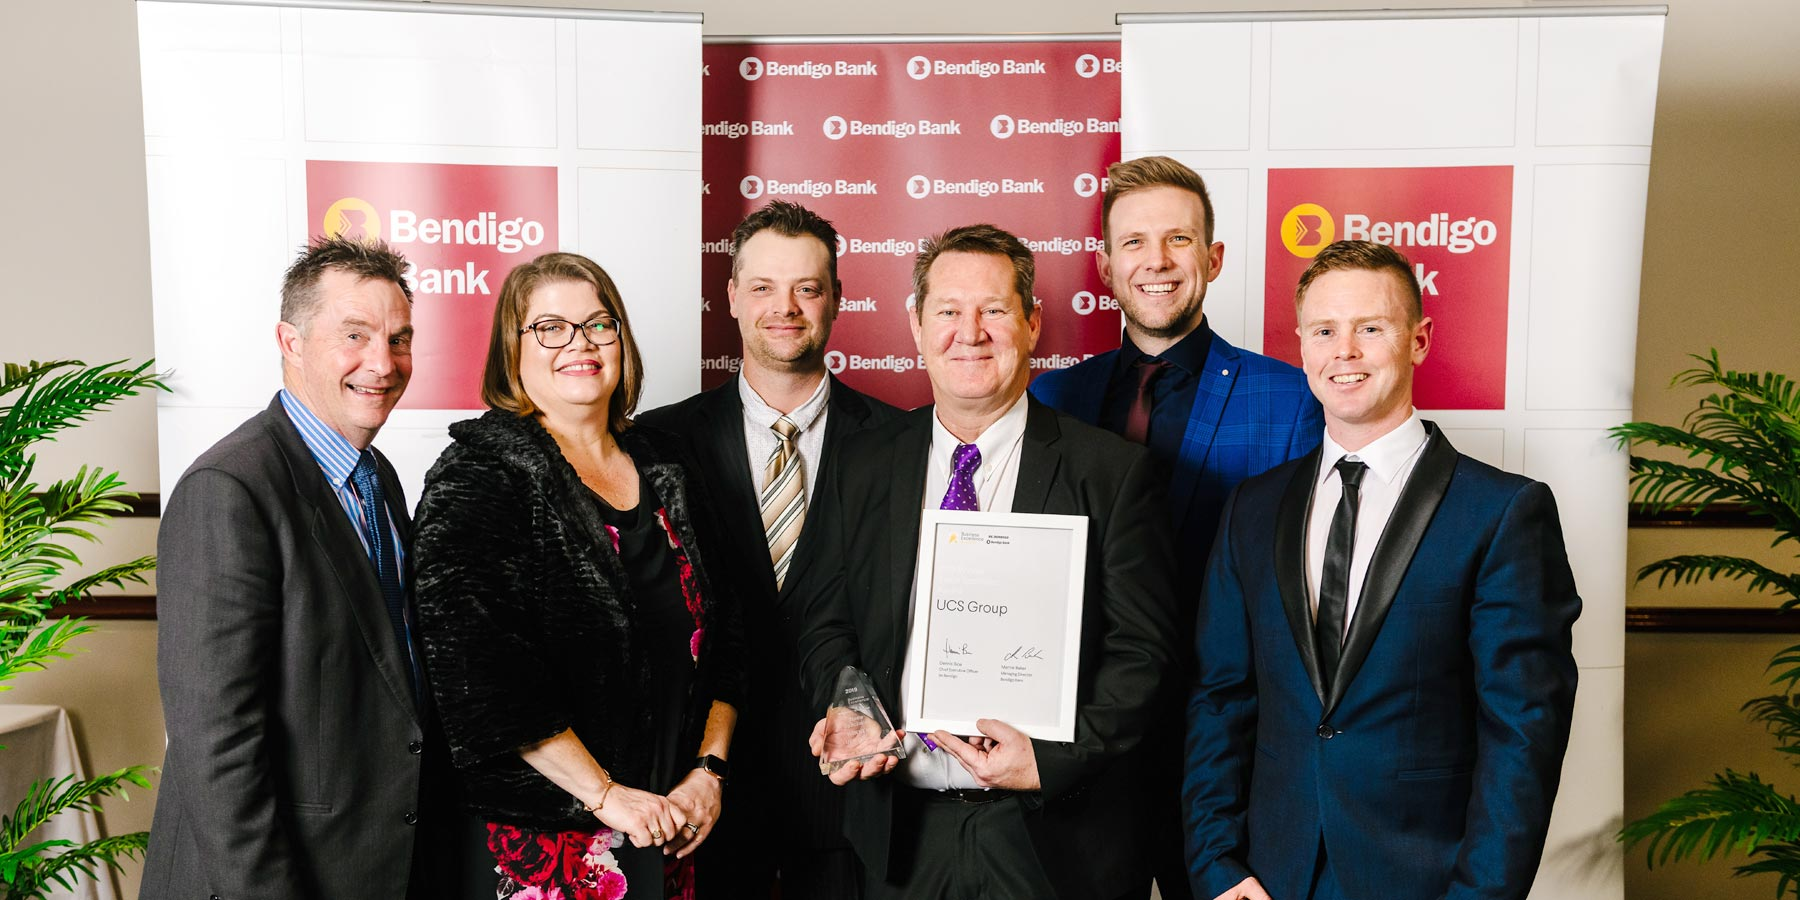 UCS Group wins 2019 Be.Bendigo award